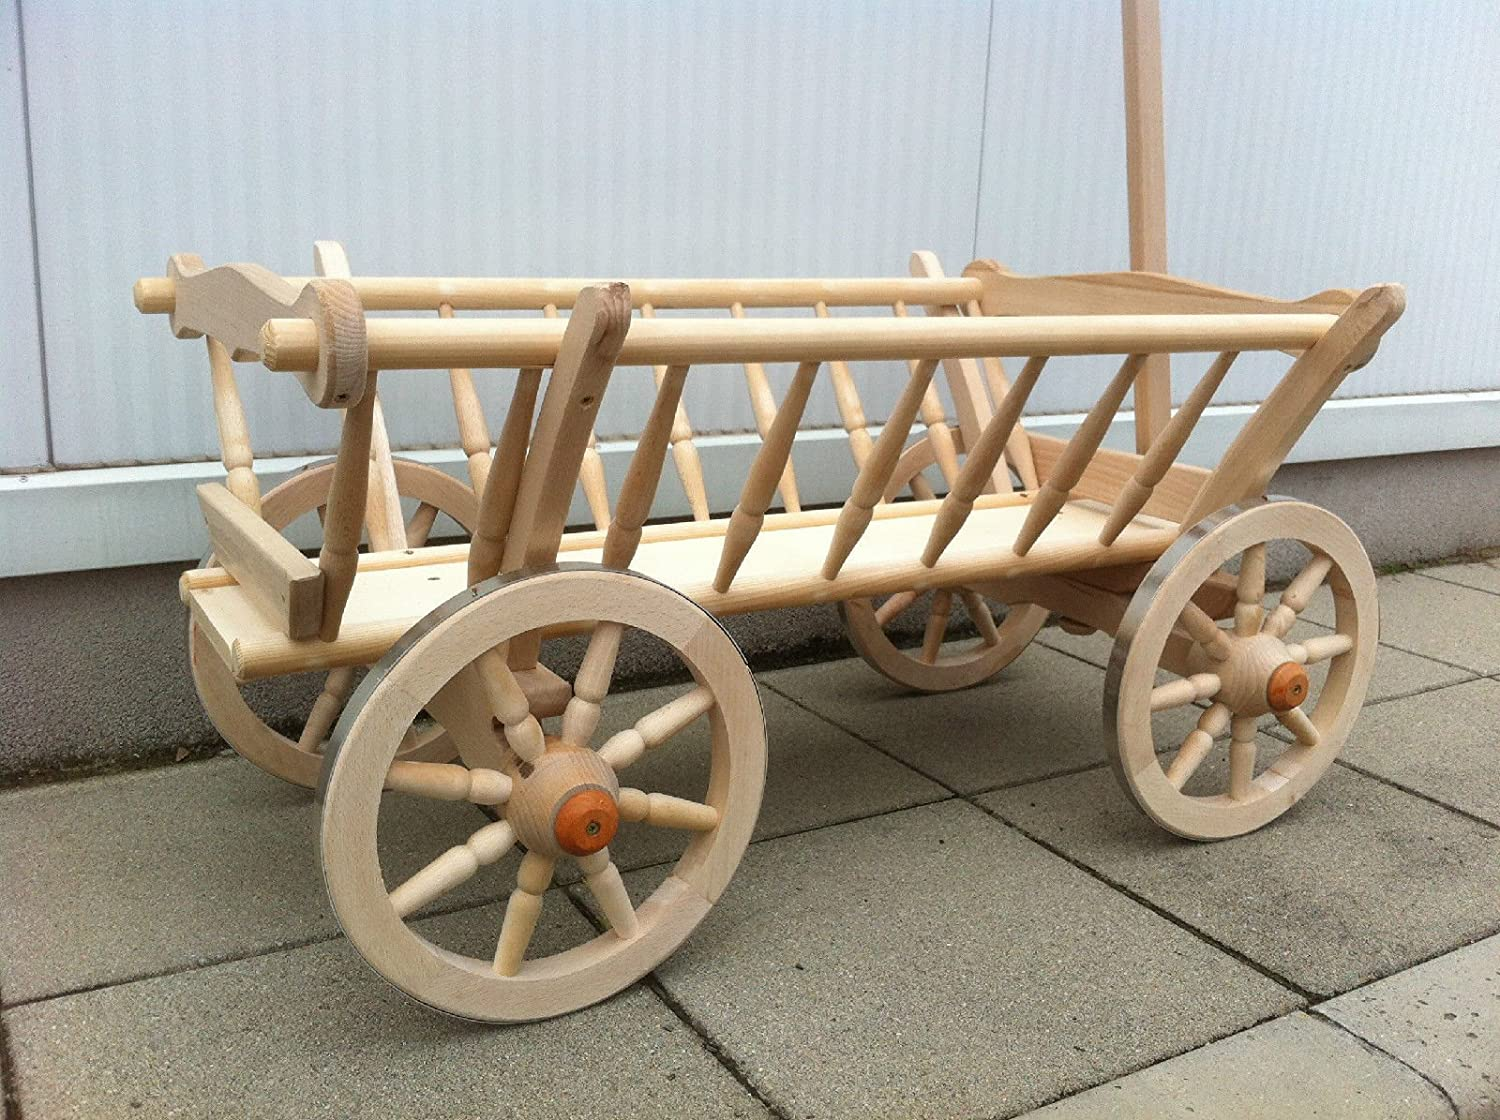 Amazon.com: New Wooden Farm Cart ⁄ Wagon Goat Cart: Kitchen & Dining